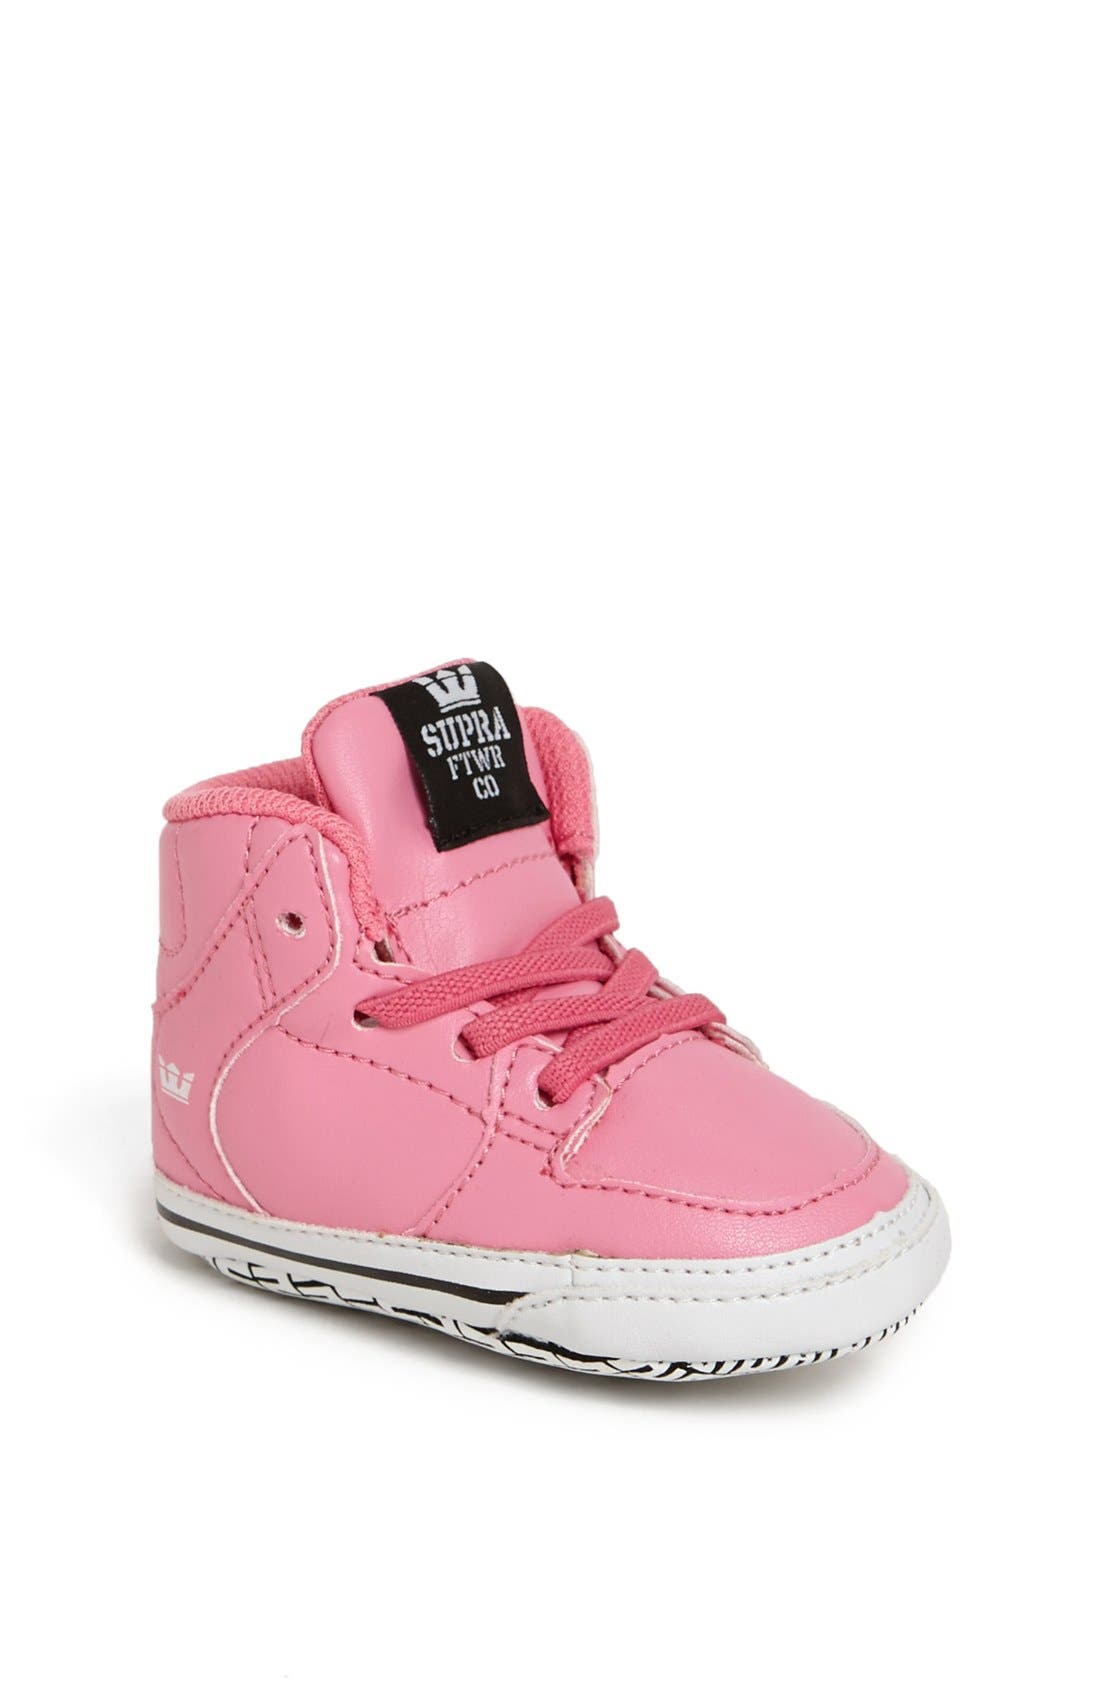 Alternate Image 1 Selected - Supra 'Vaider' Crib Shoe (Baby)